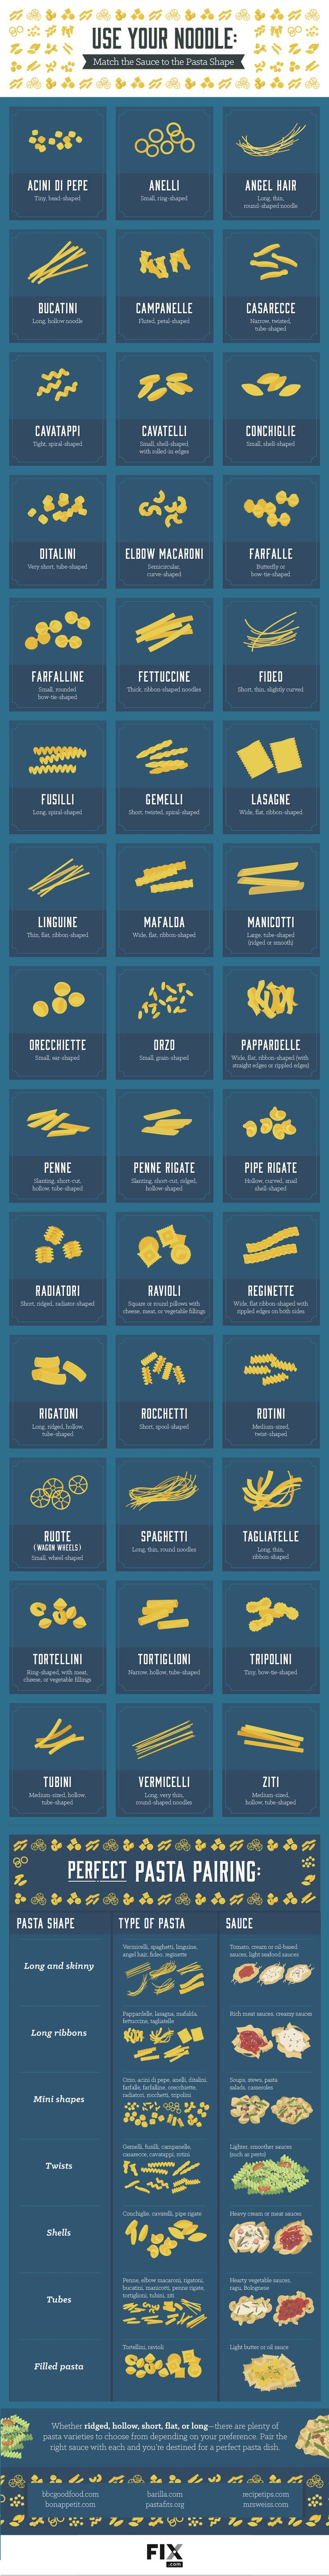 Eveything you need to know about noodle, pasta and sauce. #food #pasta #dinner